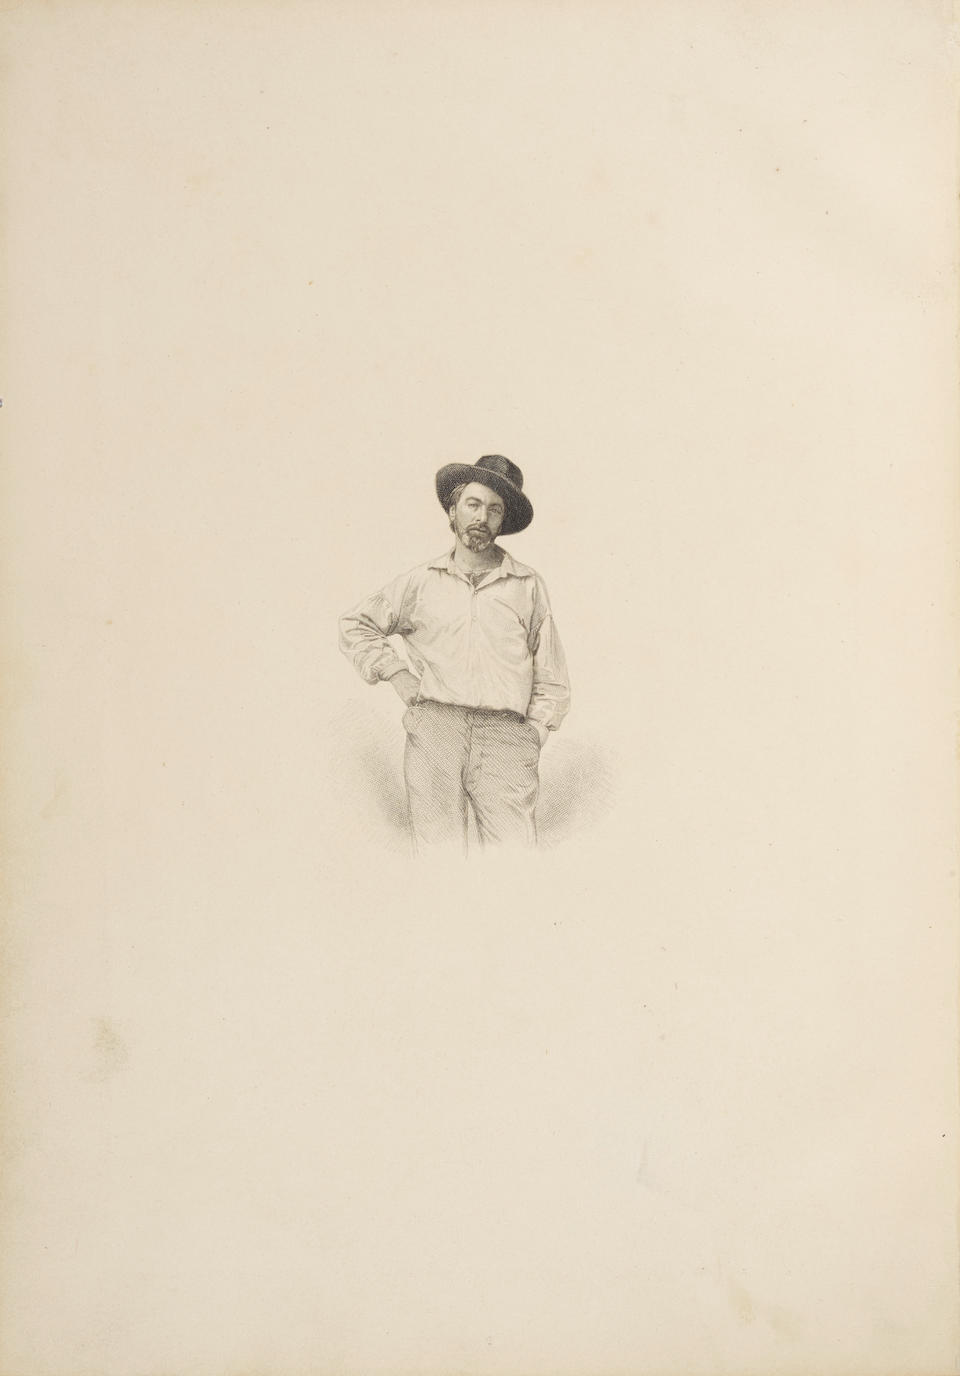 WHITMAN, WALT. 1819-1892. Leaves of Grass Brooklyn: [For the author], 1855.